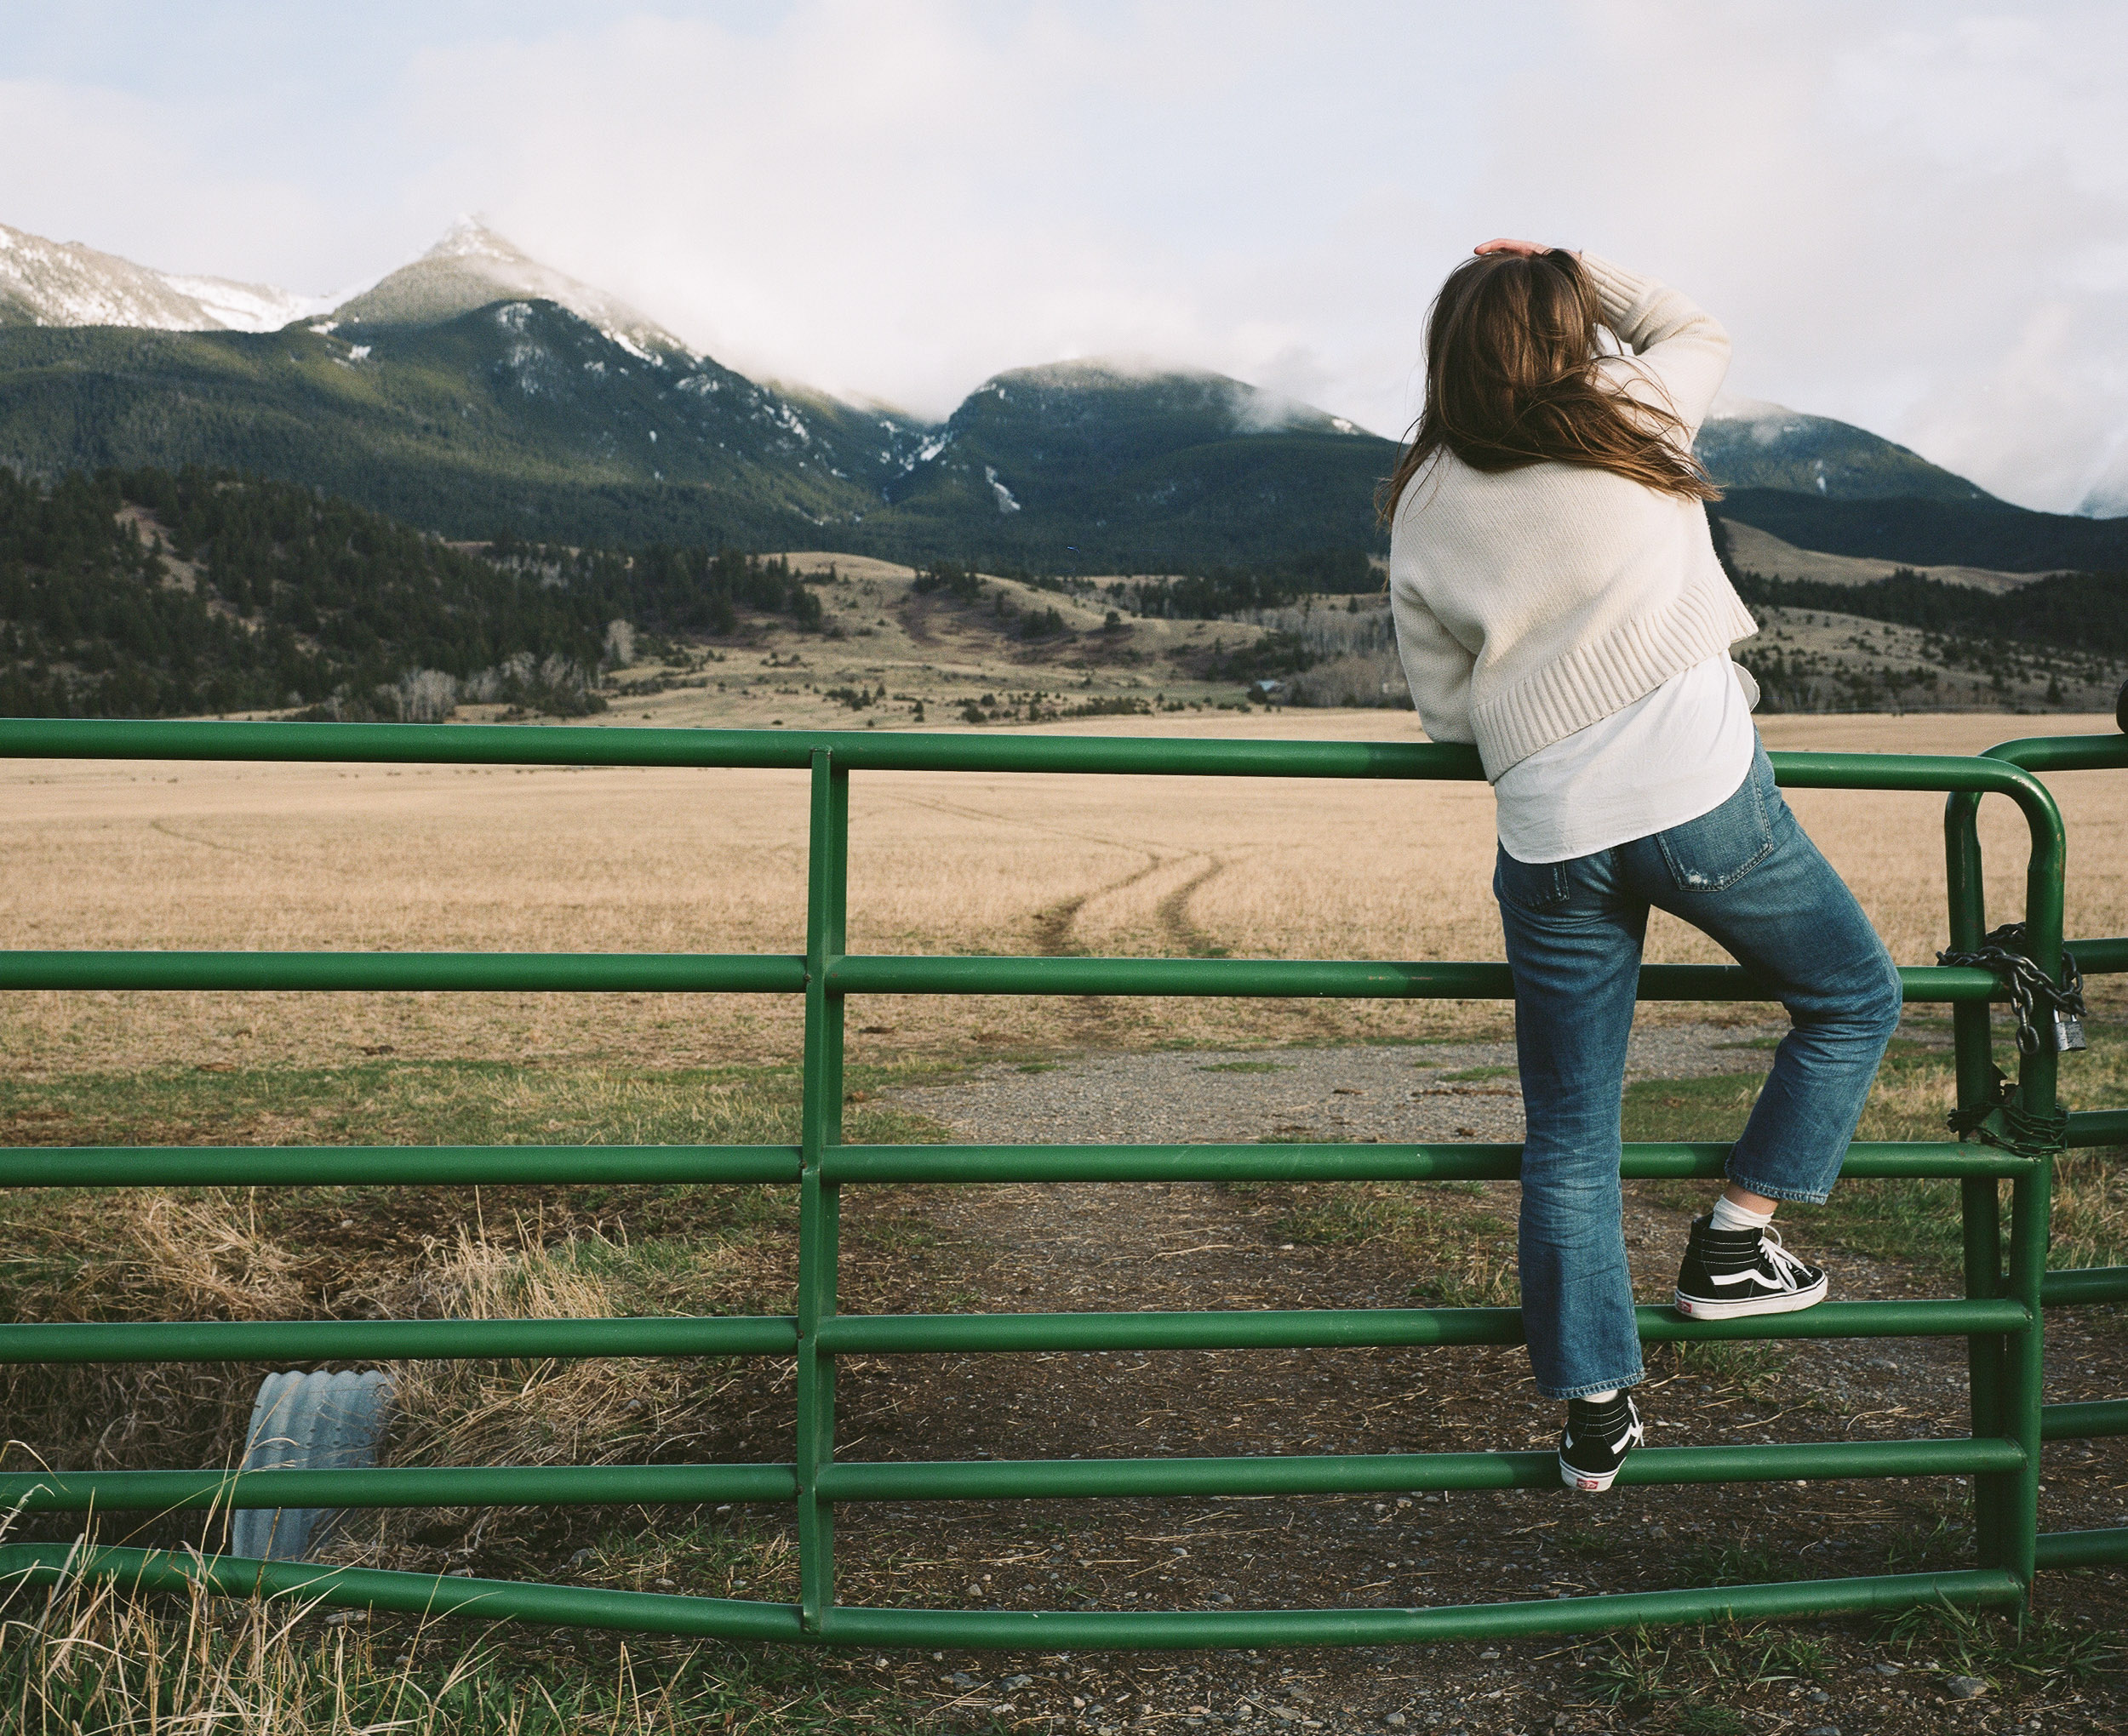 Young woman wearing jeans and a sweater standing on a green gate looking out over a field towards the mountains in Paradise Valley, Montana.